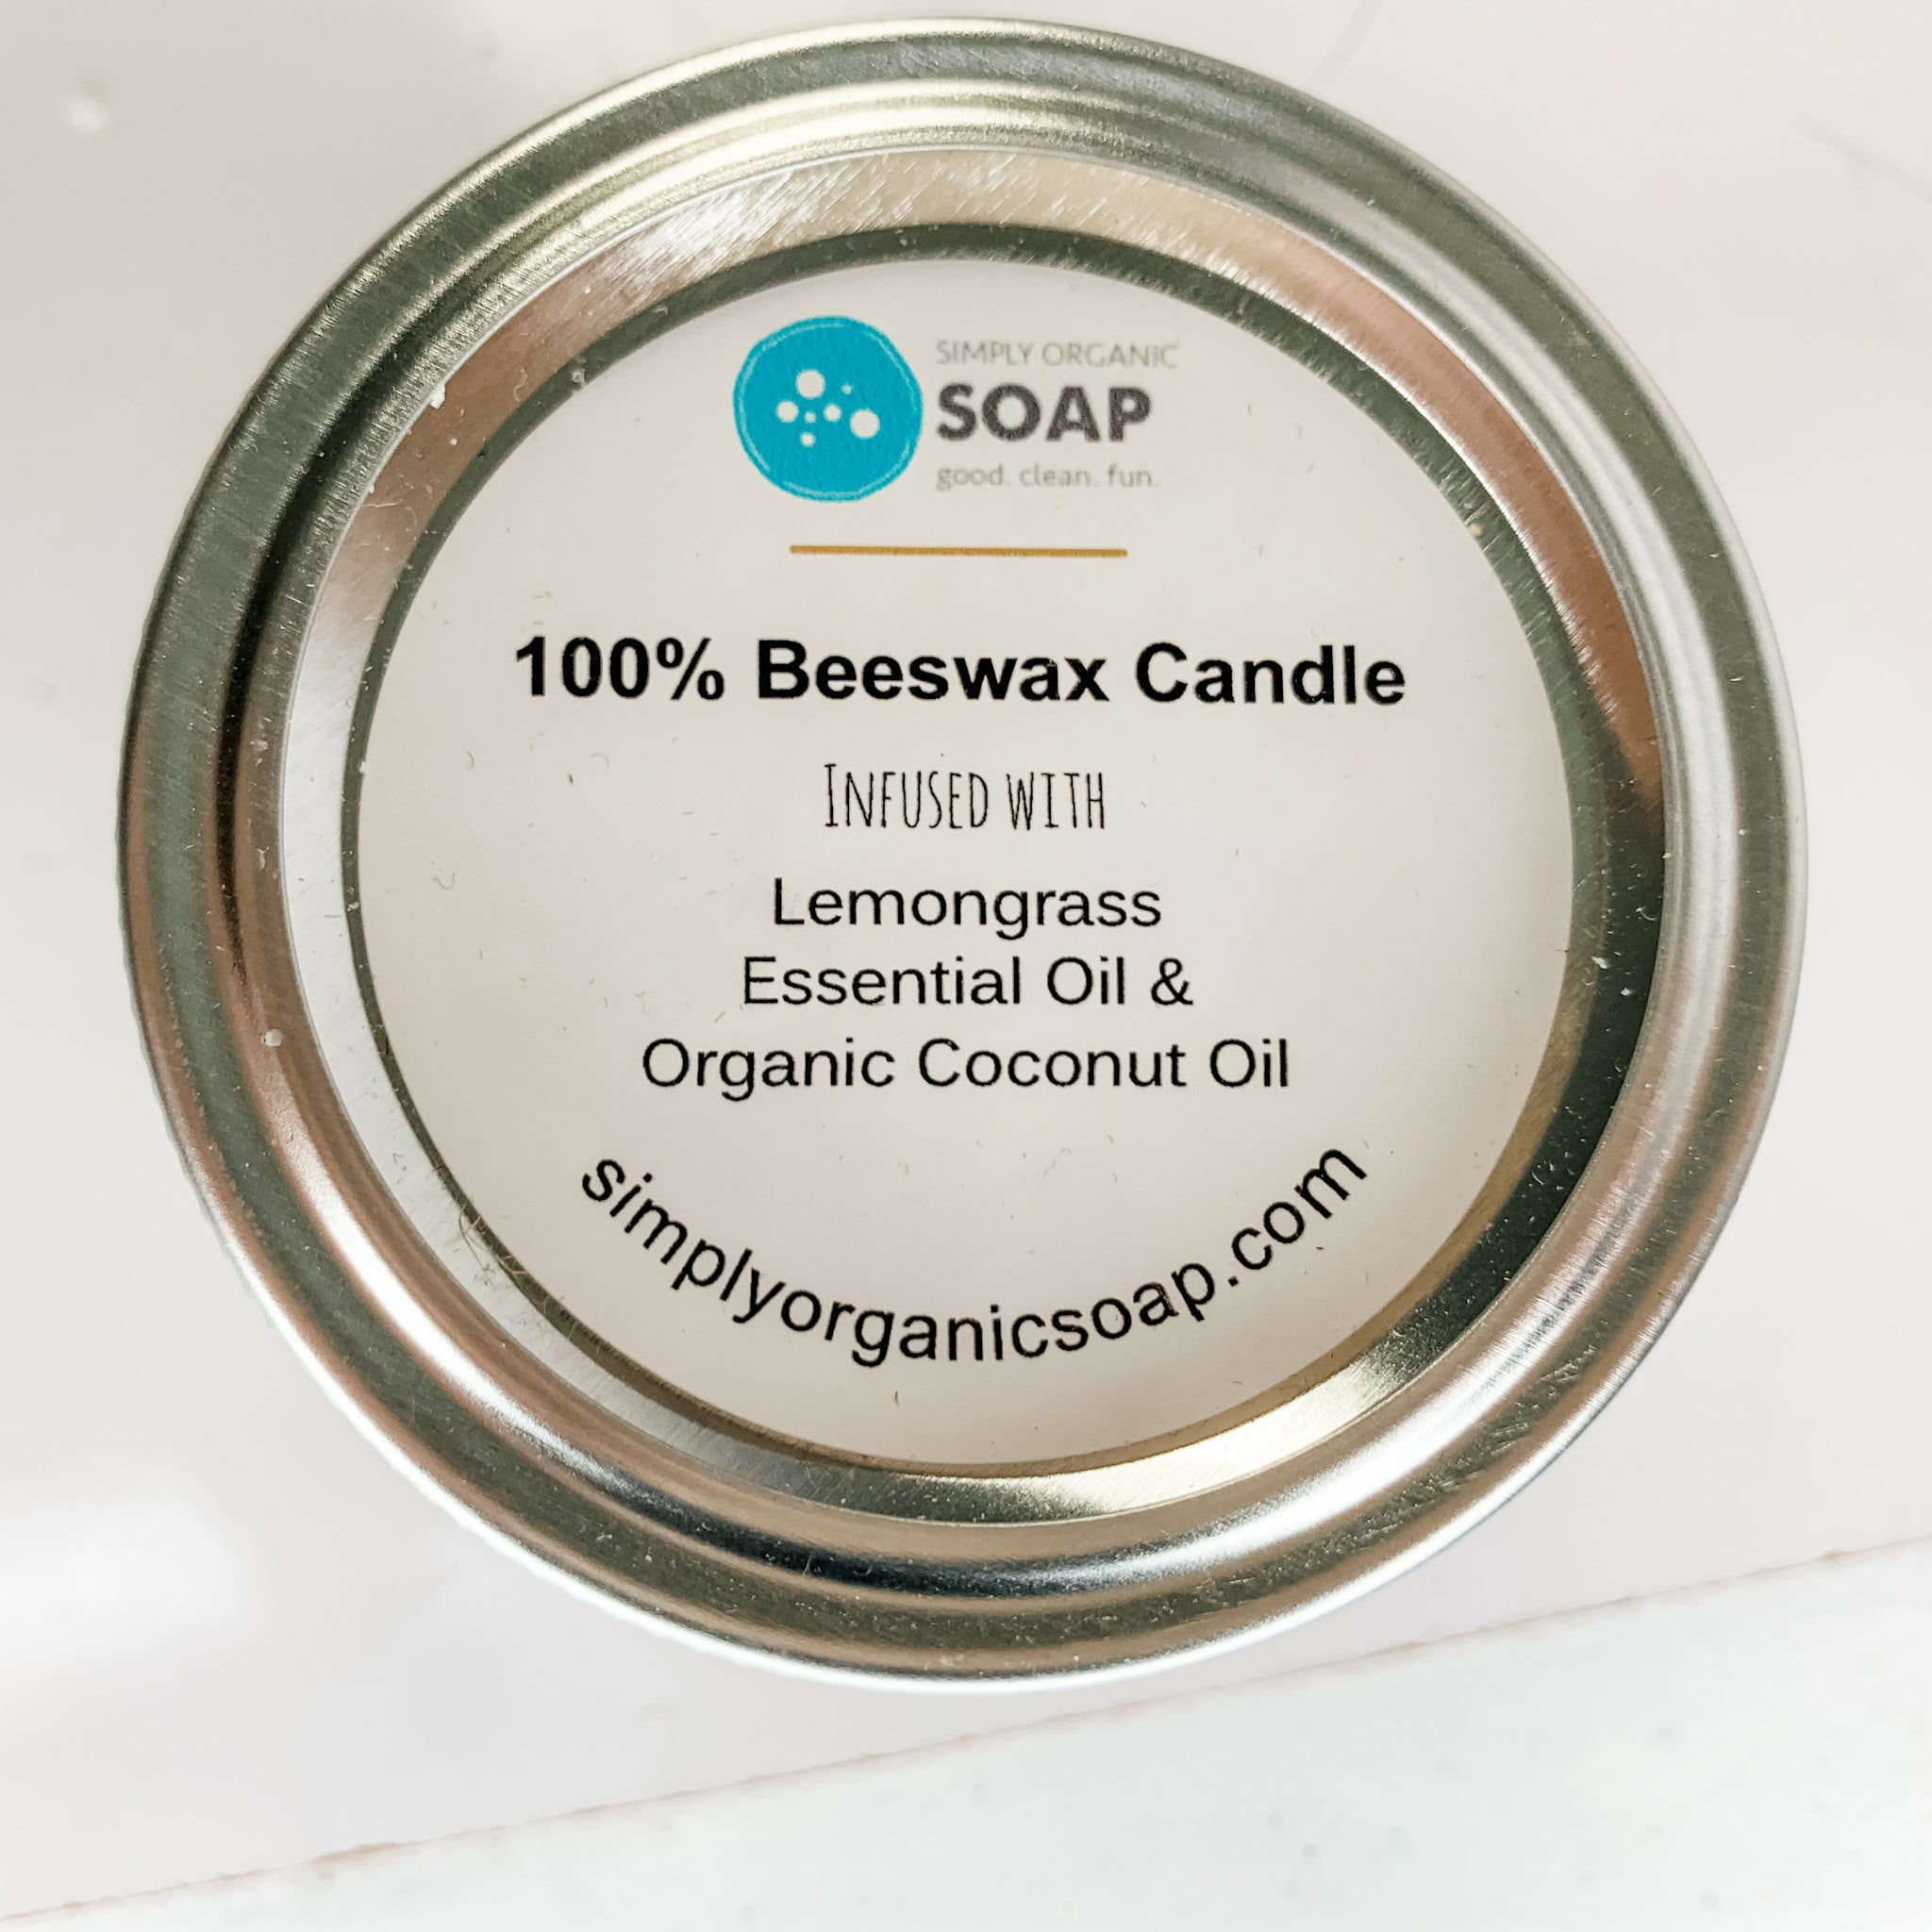 Mason Jar 100% Beeswax Candle & Lemongrass EO